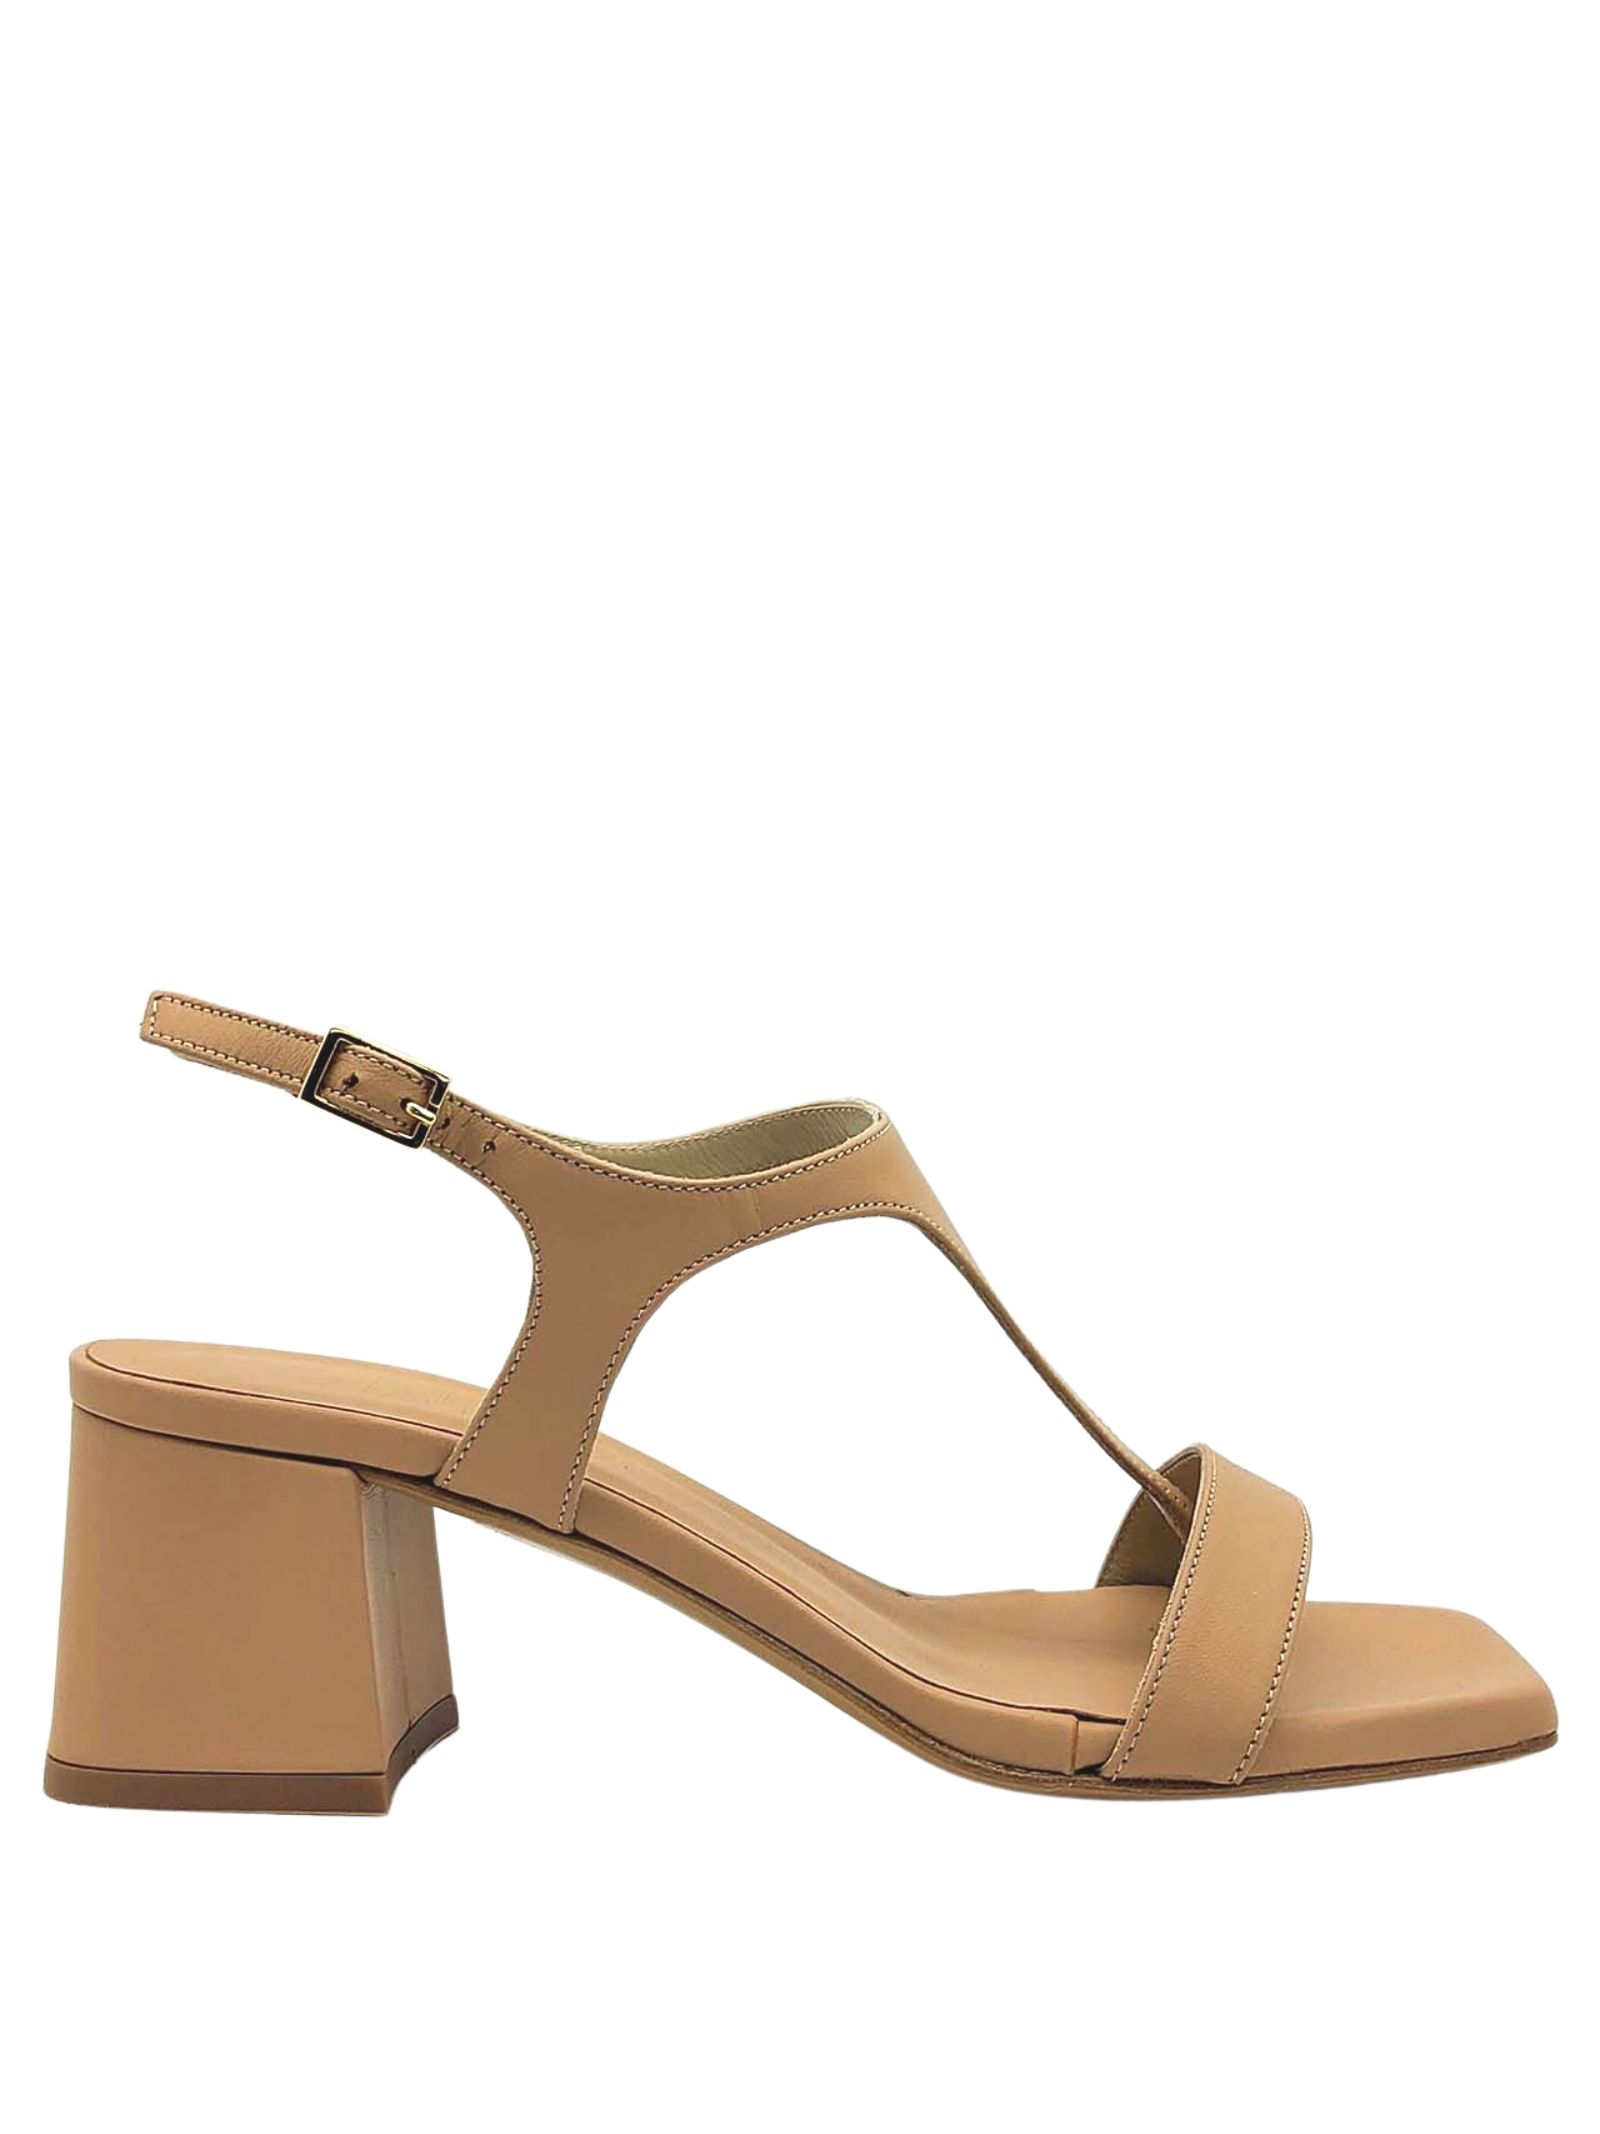 Women's Shoes Thong Sandals In Nude Leather Heel And Square Toe Tattoo | Sandals | 110300